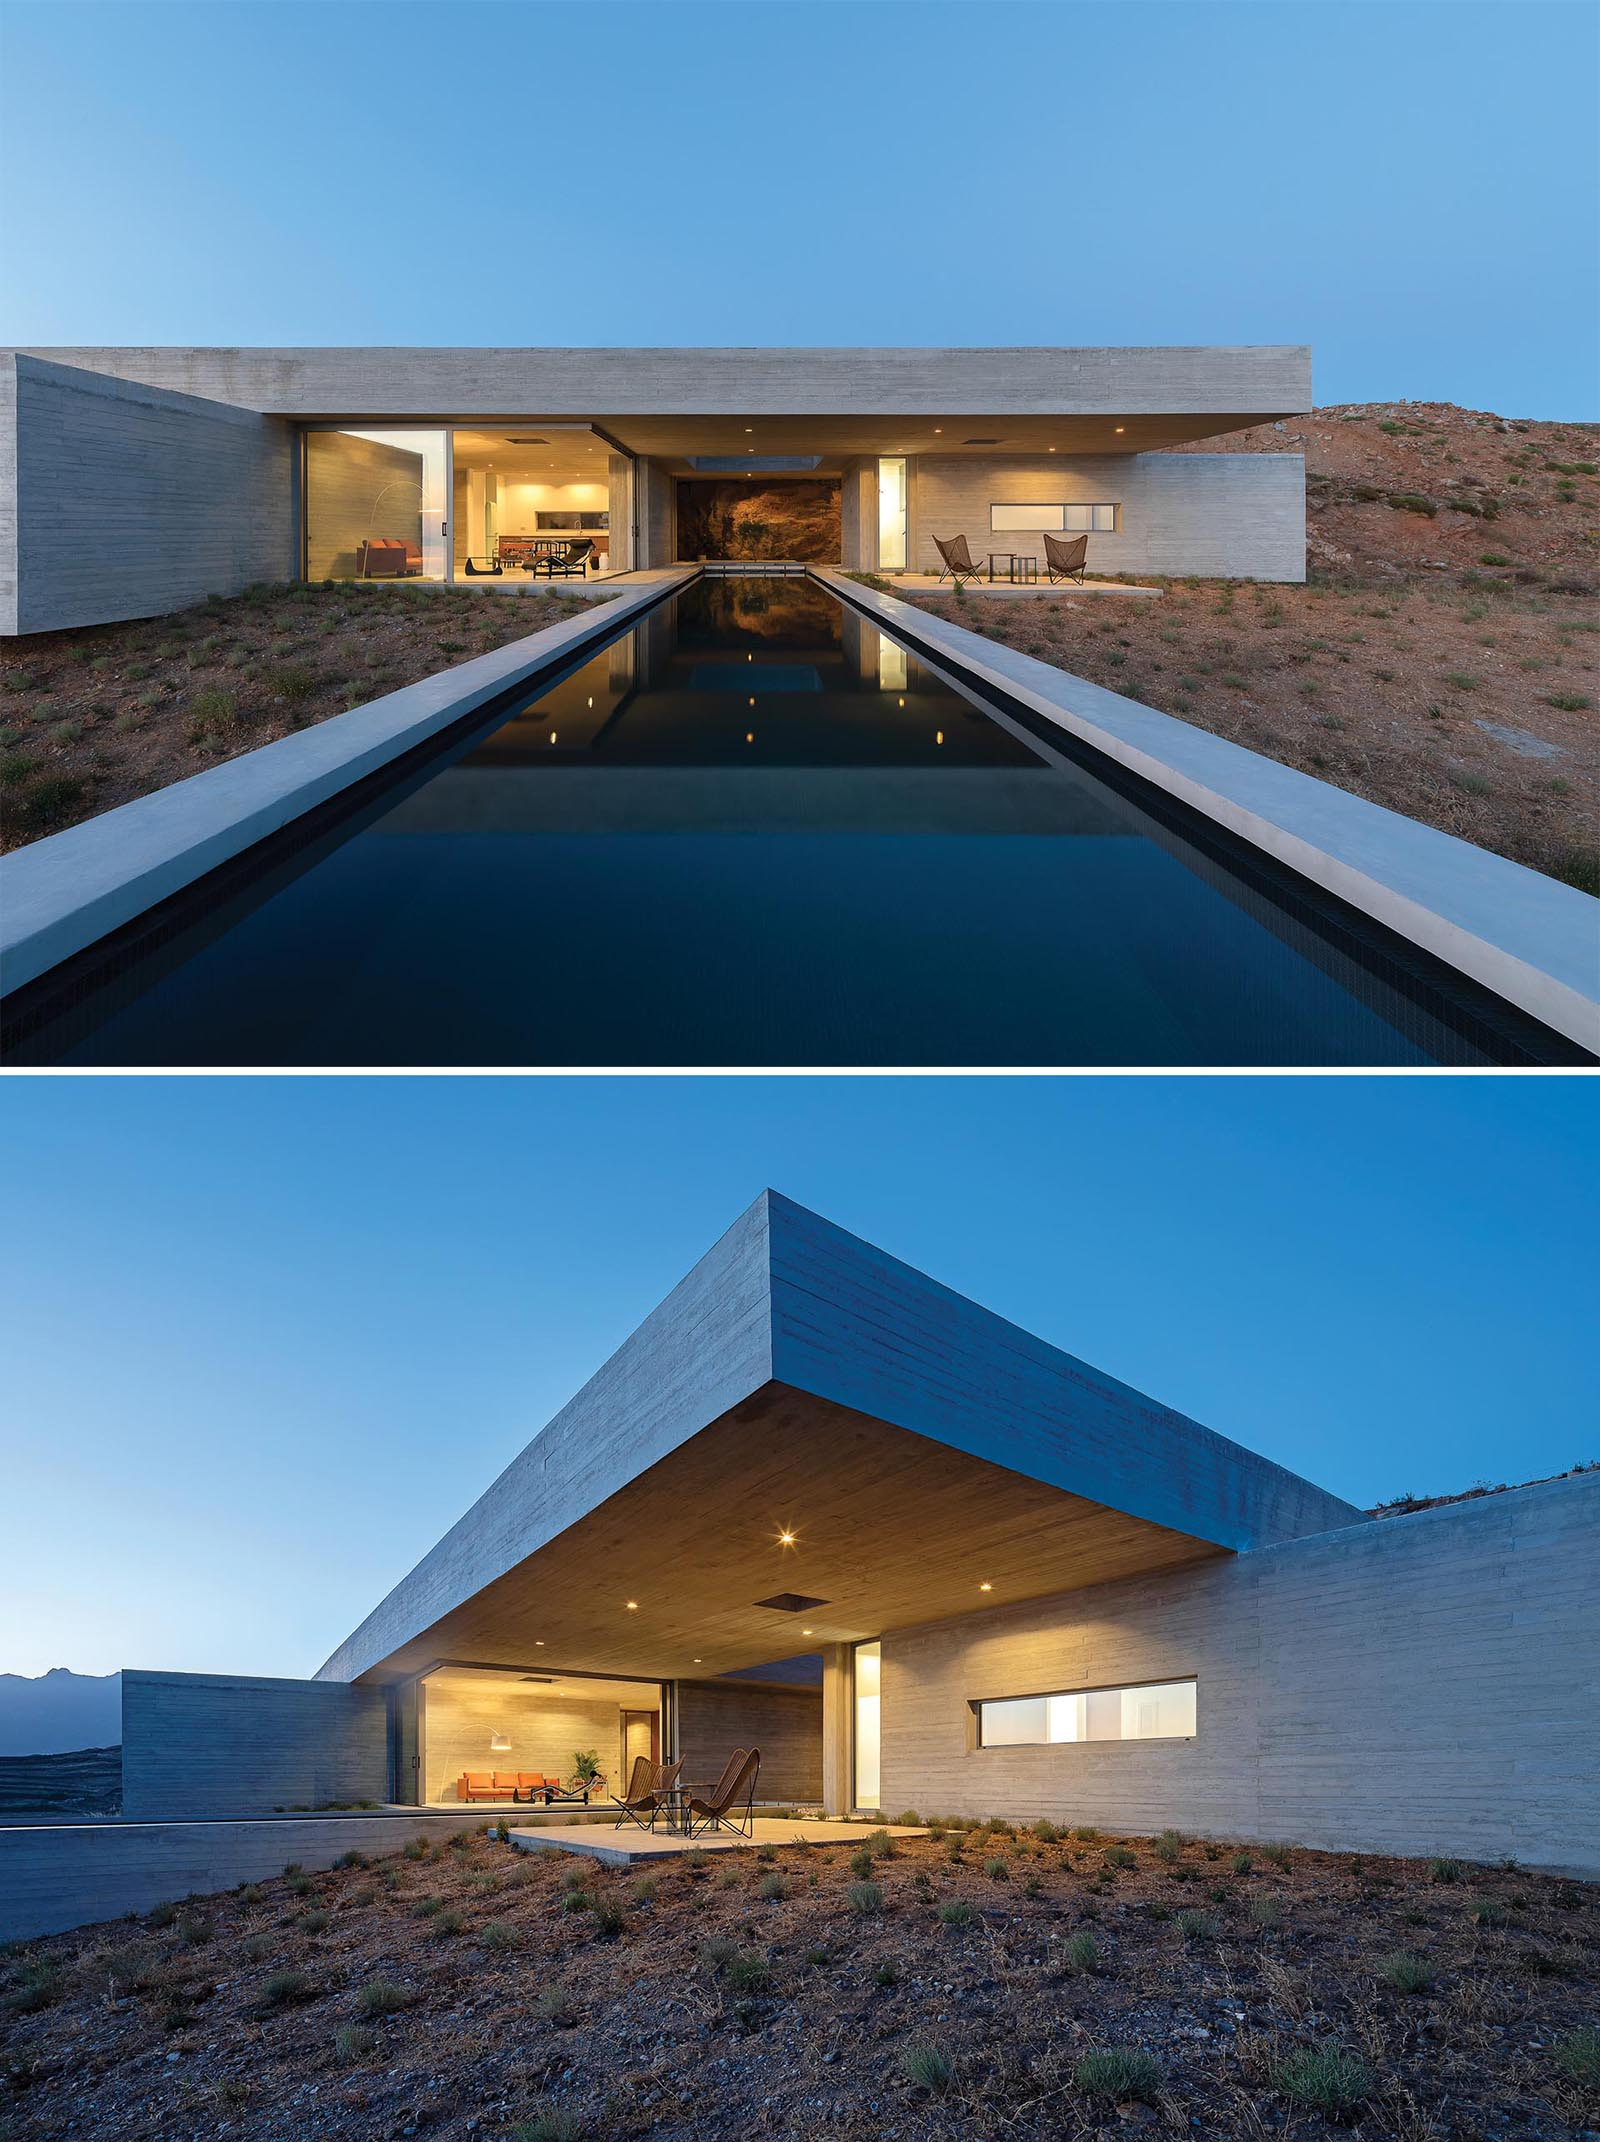 A modern concrete house built into the hillside has a linear swimming pool and a covered outdoor patio.